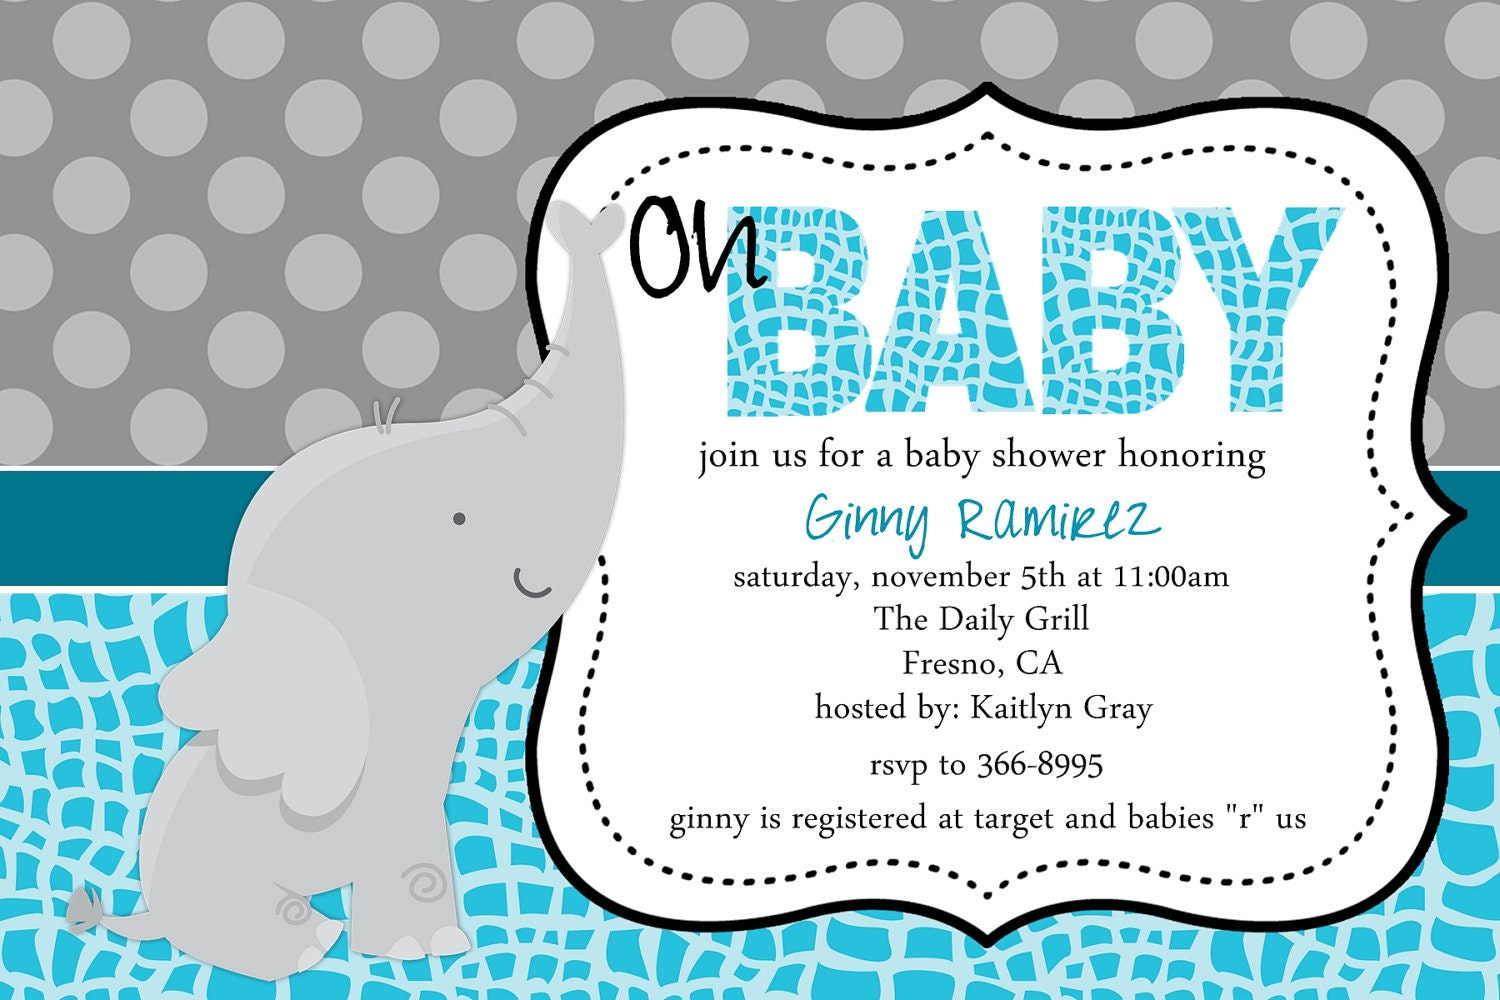 Elephant Themed Baby Shower Invitations is one of our best ideas you might choose for invitation design